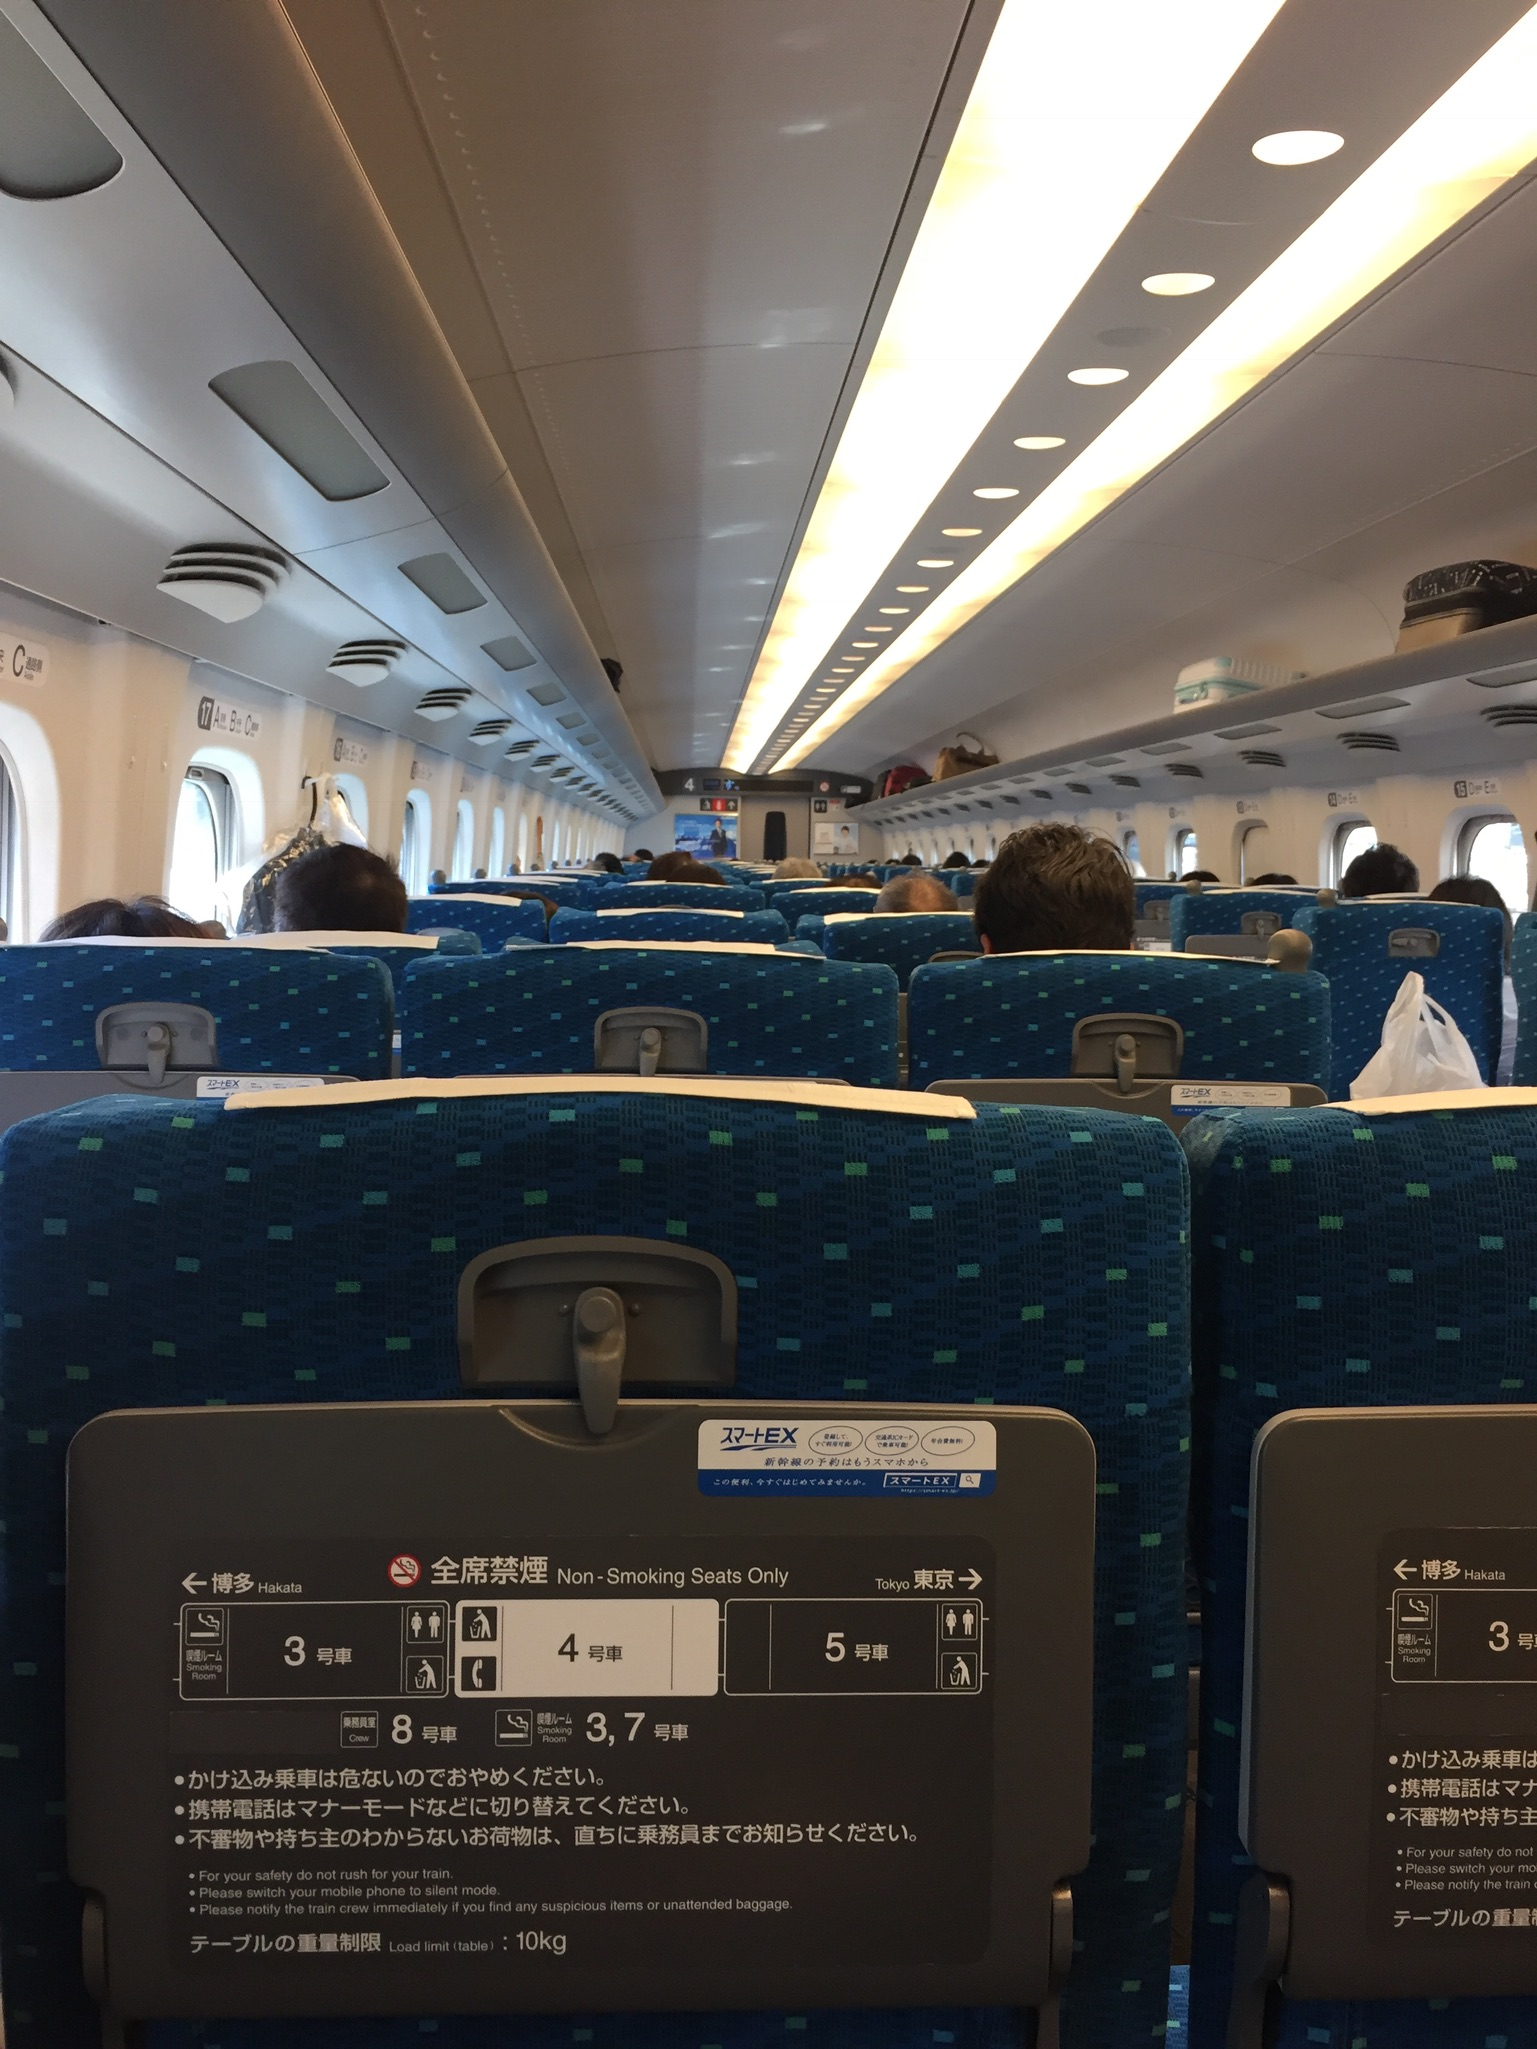 Inside the high speed Shinkansen JR train.